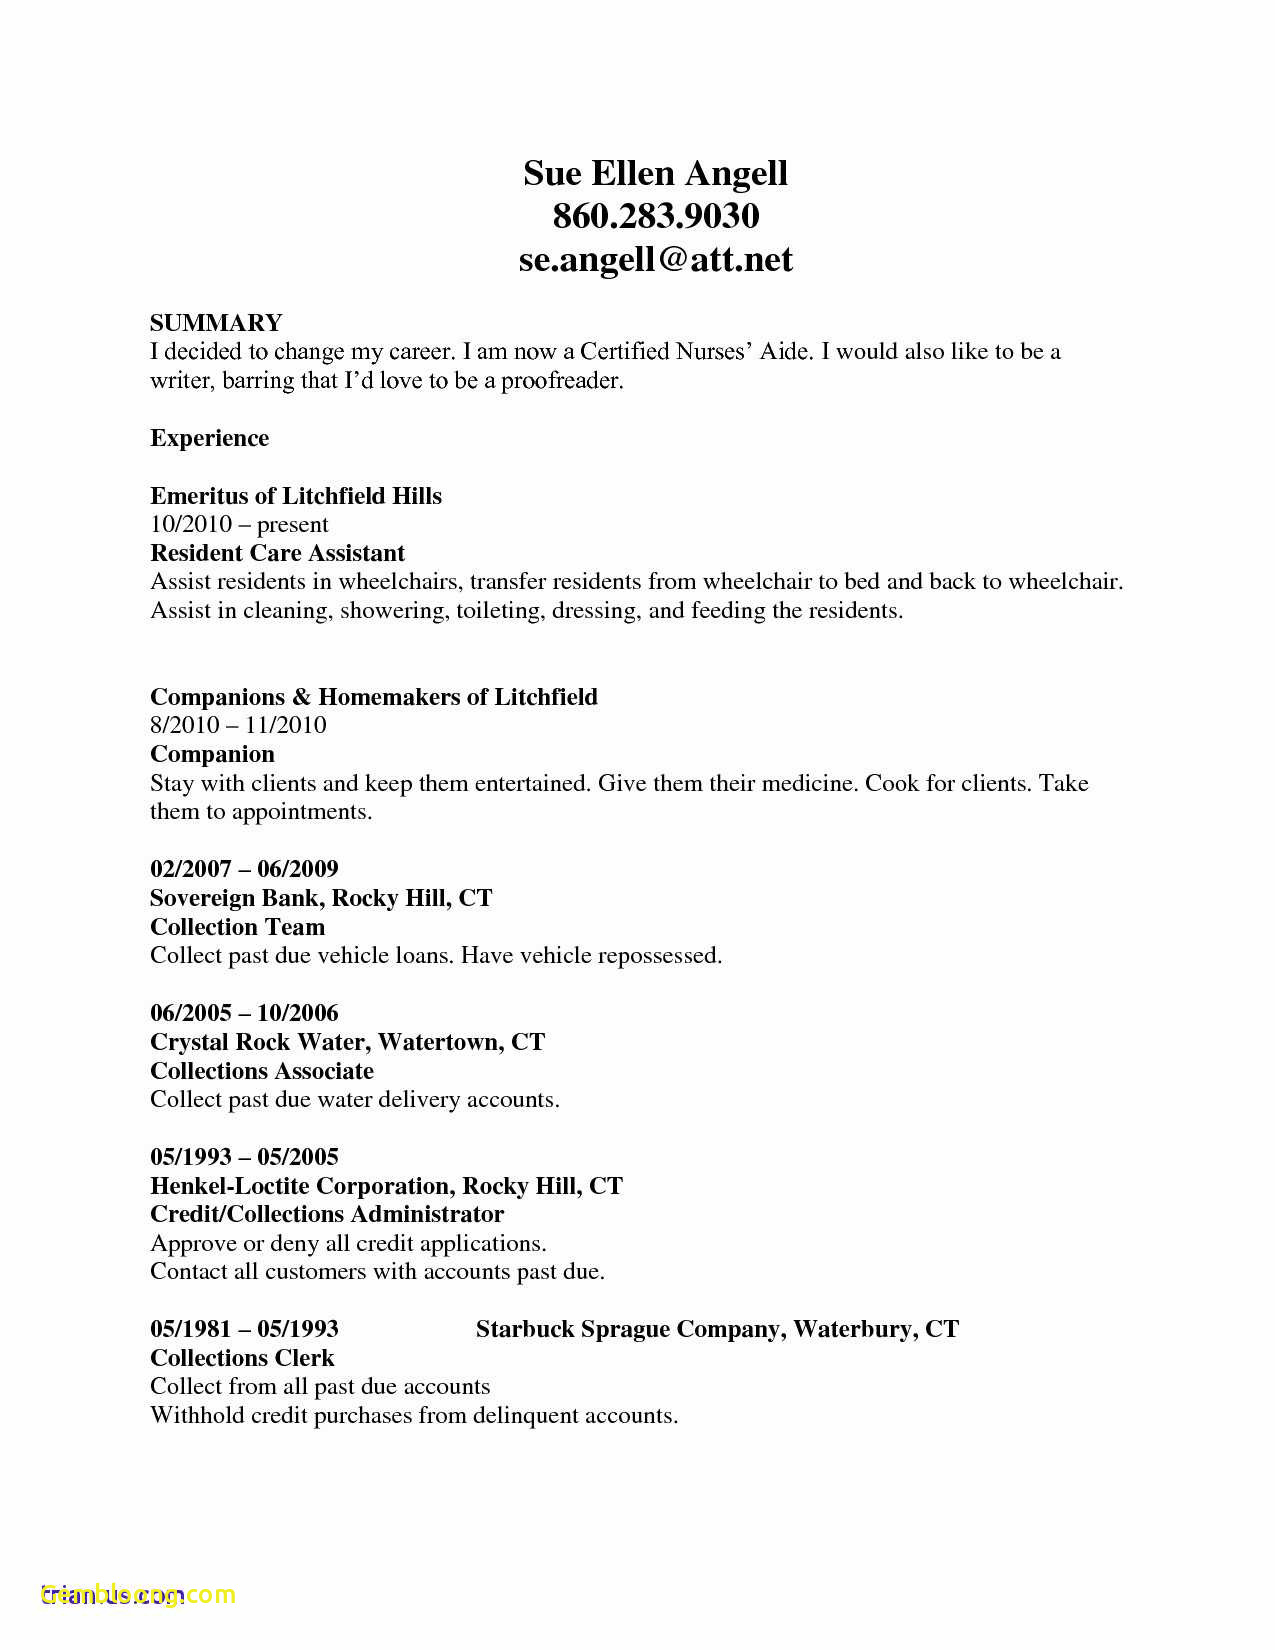 Nursing Resume Examples 2018 - Download Lovely Resume Examples Cna